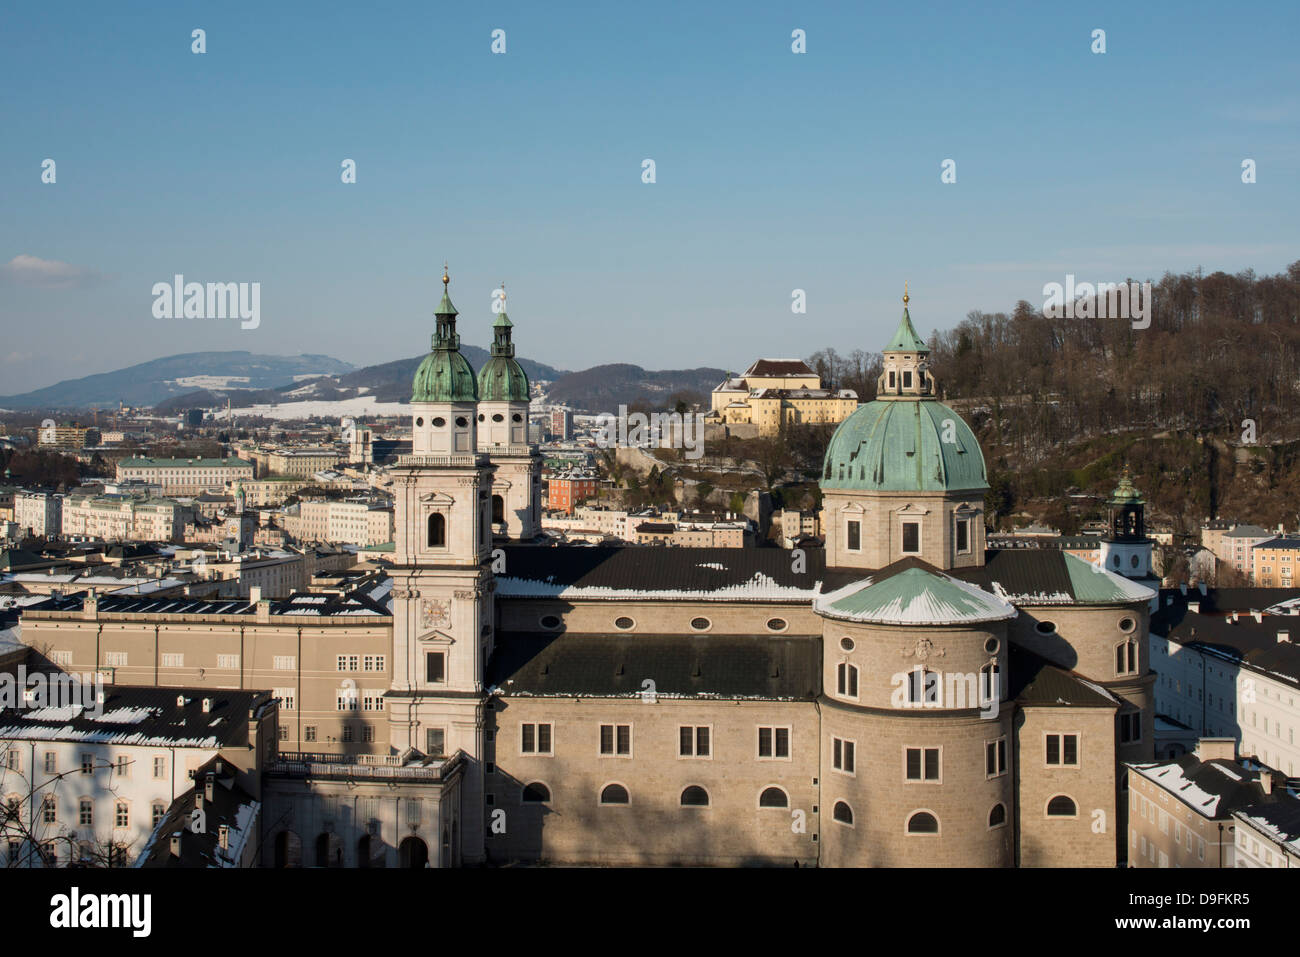 A view of the domes of the Salzburg Cathedral in the Altstadt, Salzburg, Austria - Stock Image